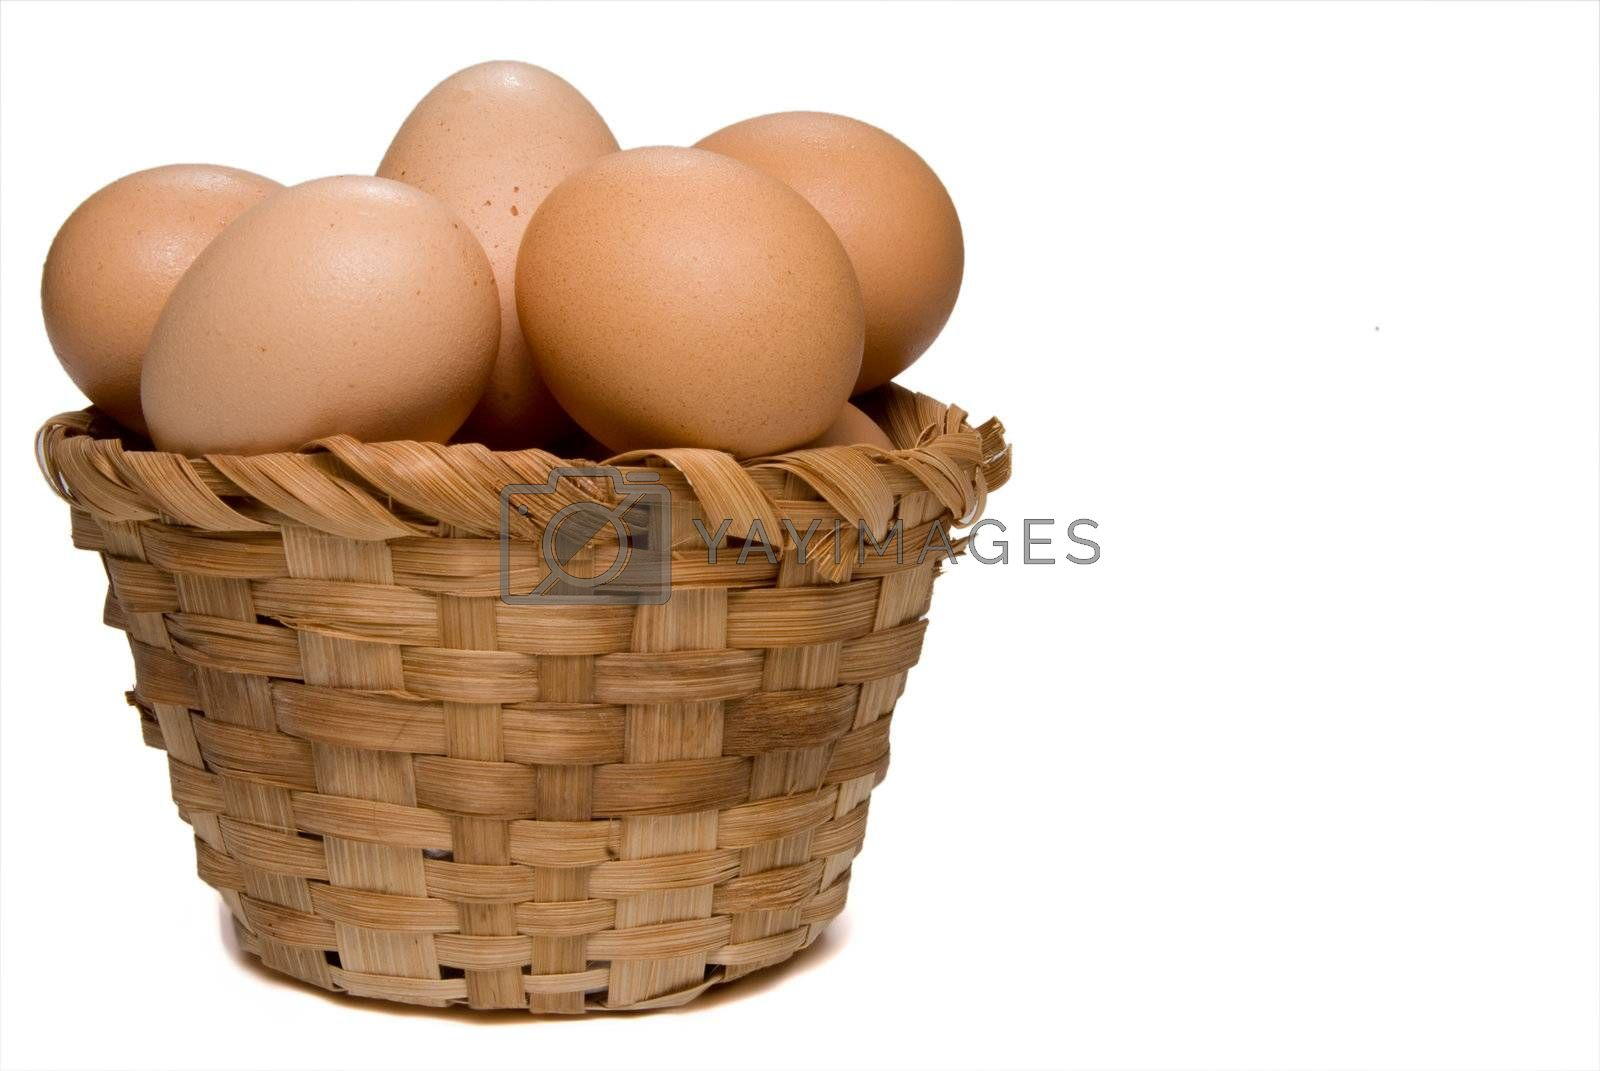 Never put all of your eggs in one basket.